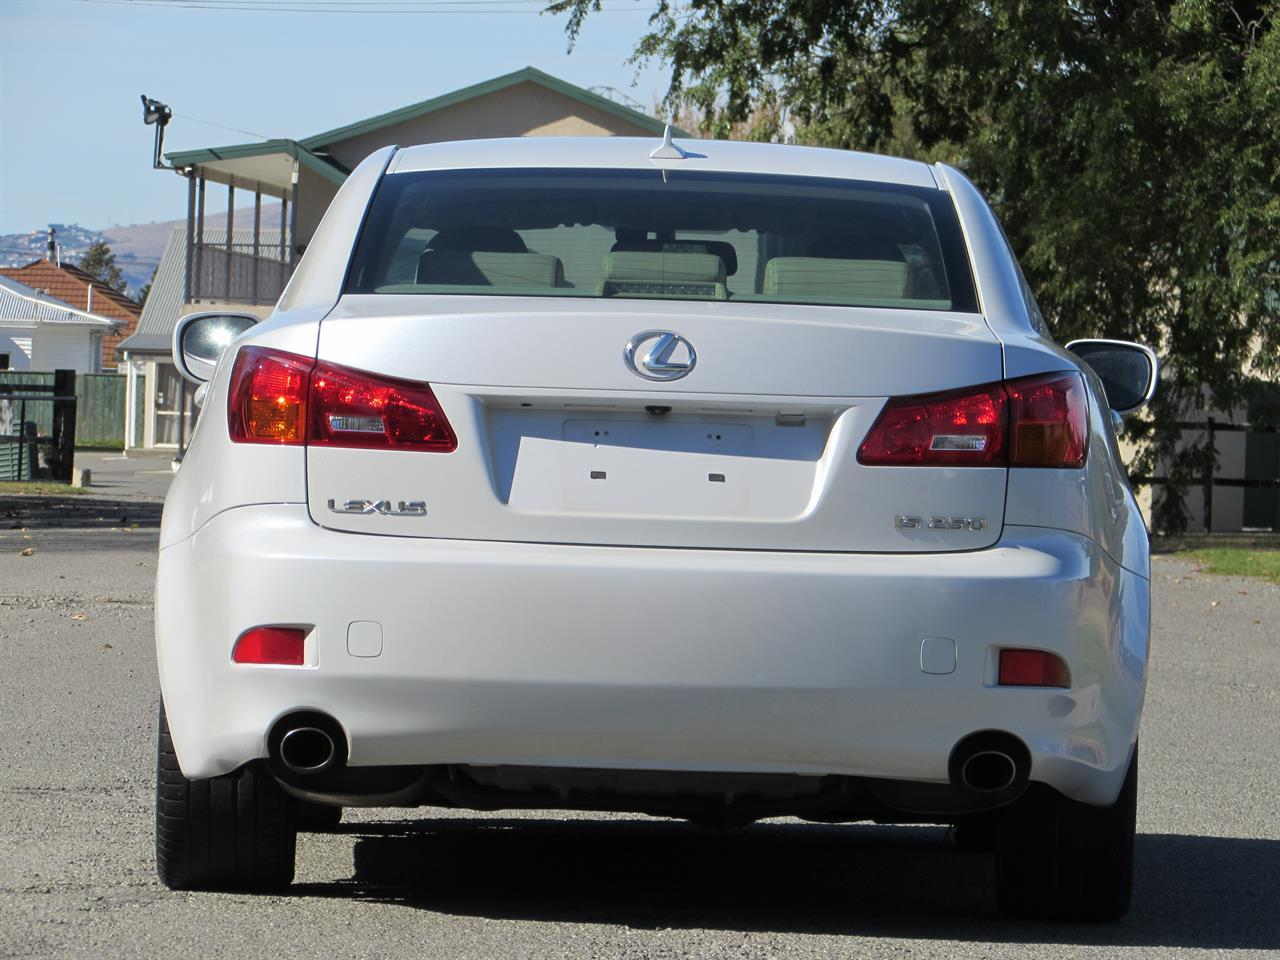 image-4, 2007 Lexus IS 250 at Christchurch